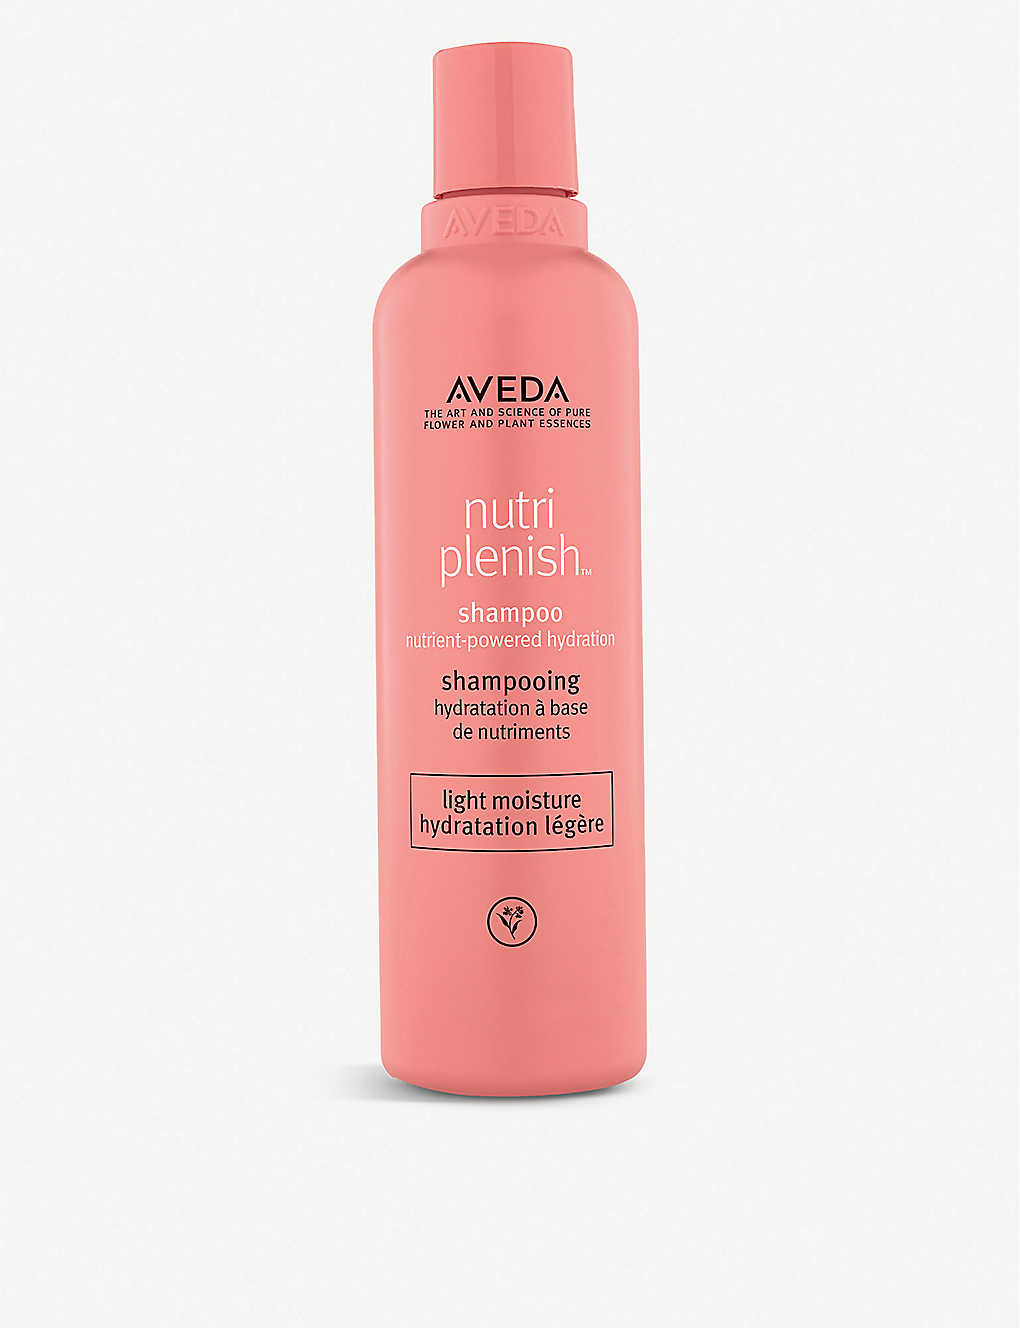 AVEDA: Nutriplenish Light Moisture shampoo 250ml